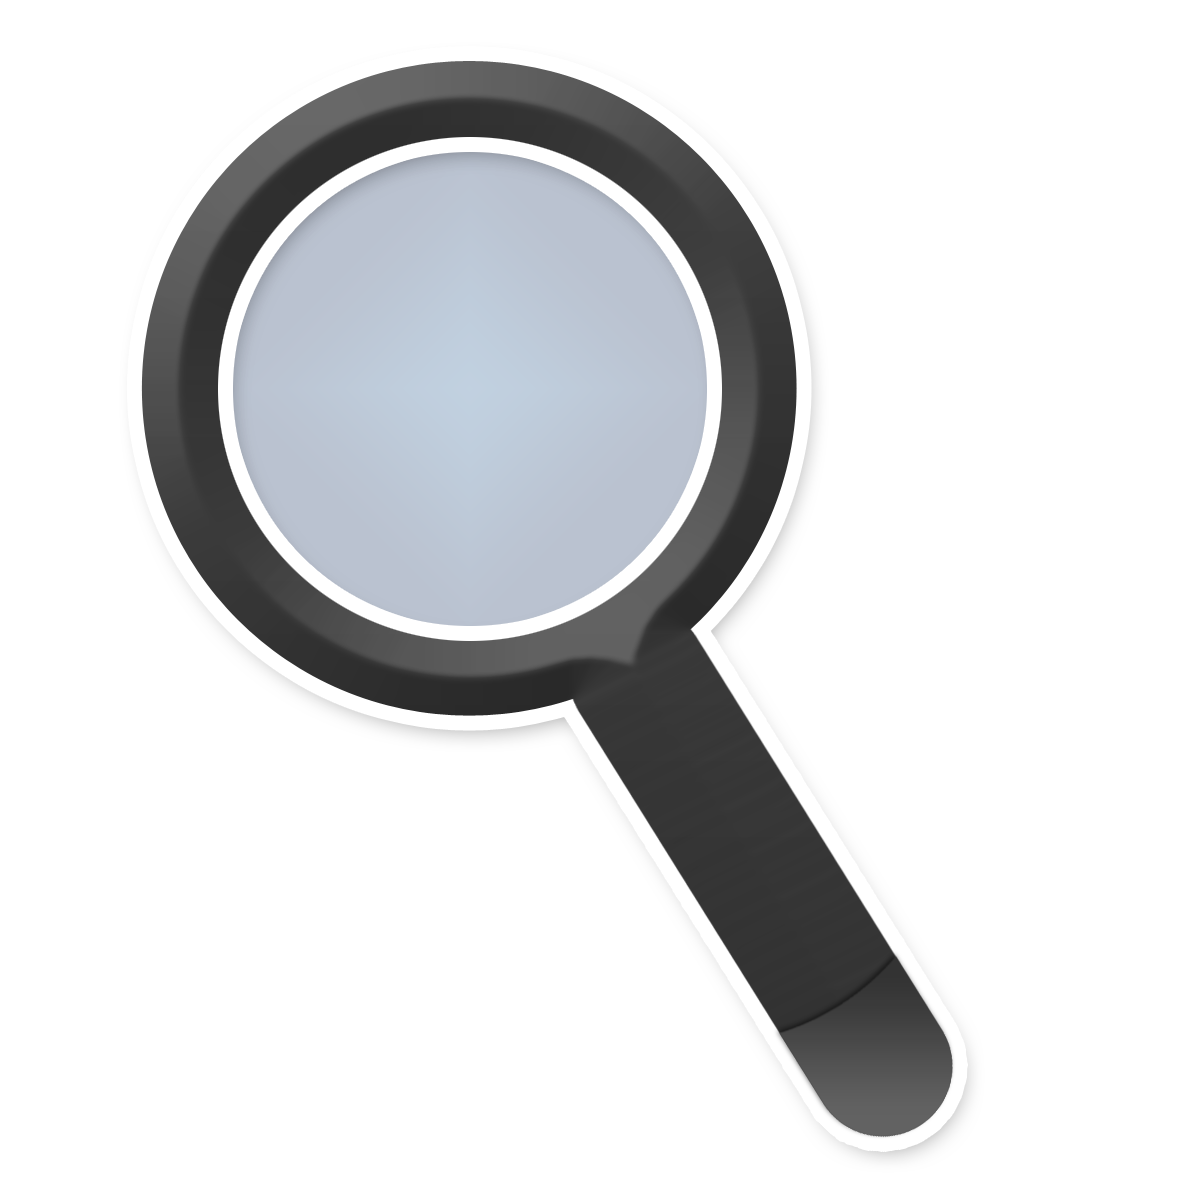 Magnifying glass vector png. Free icons and backgrounds